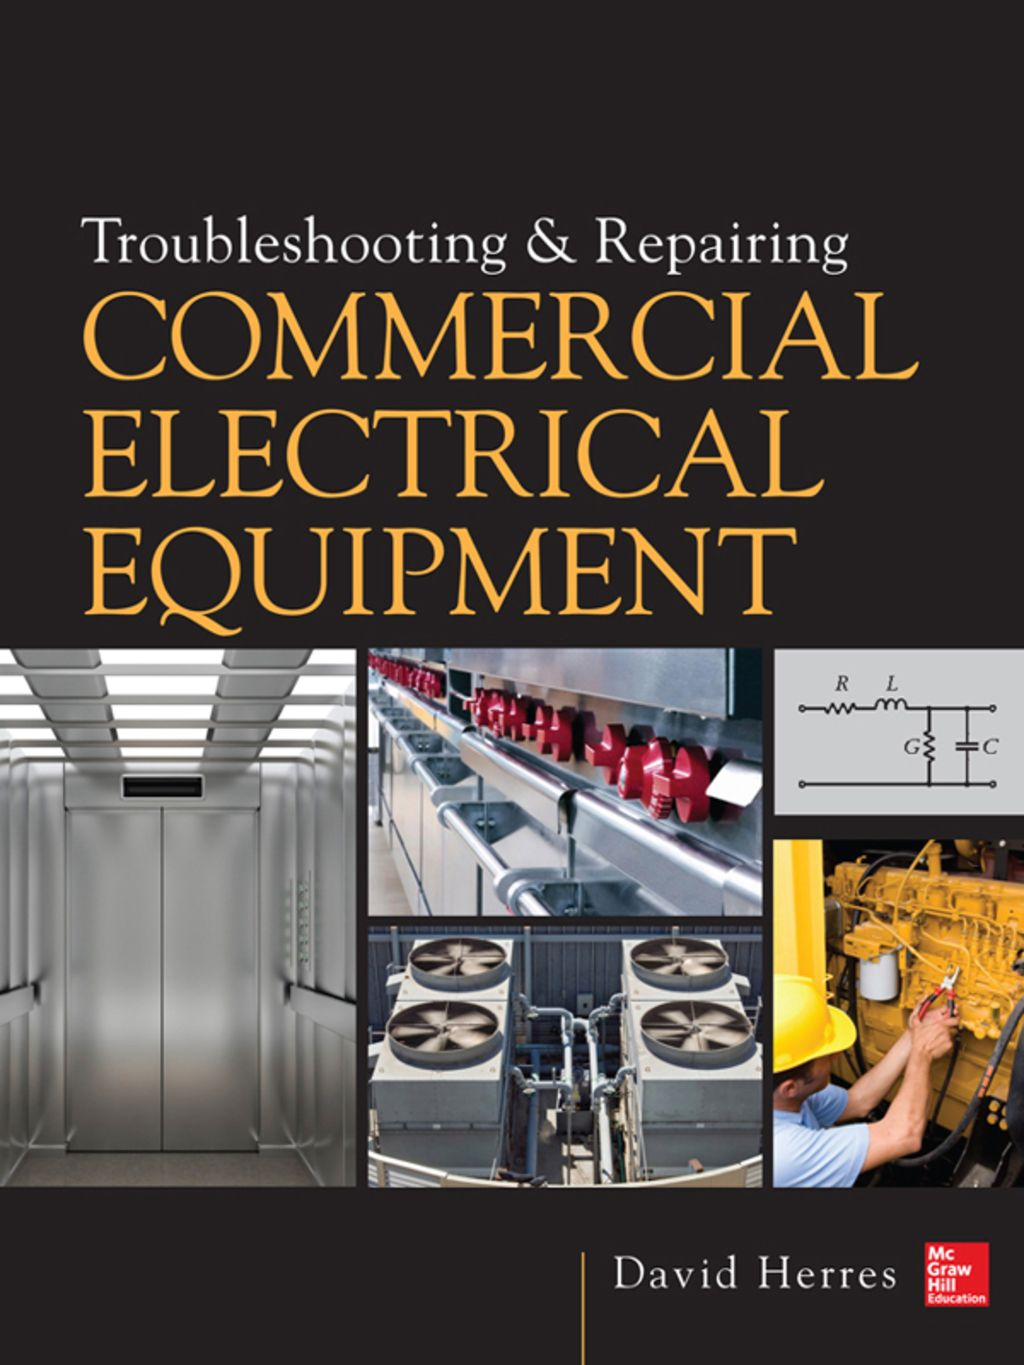 Troubleshooting and Repairing Commercial Electrical